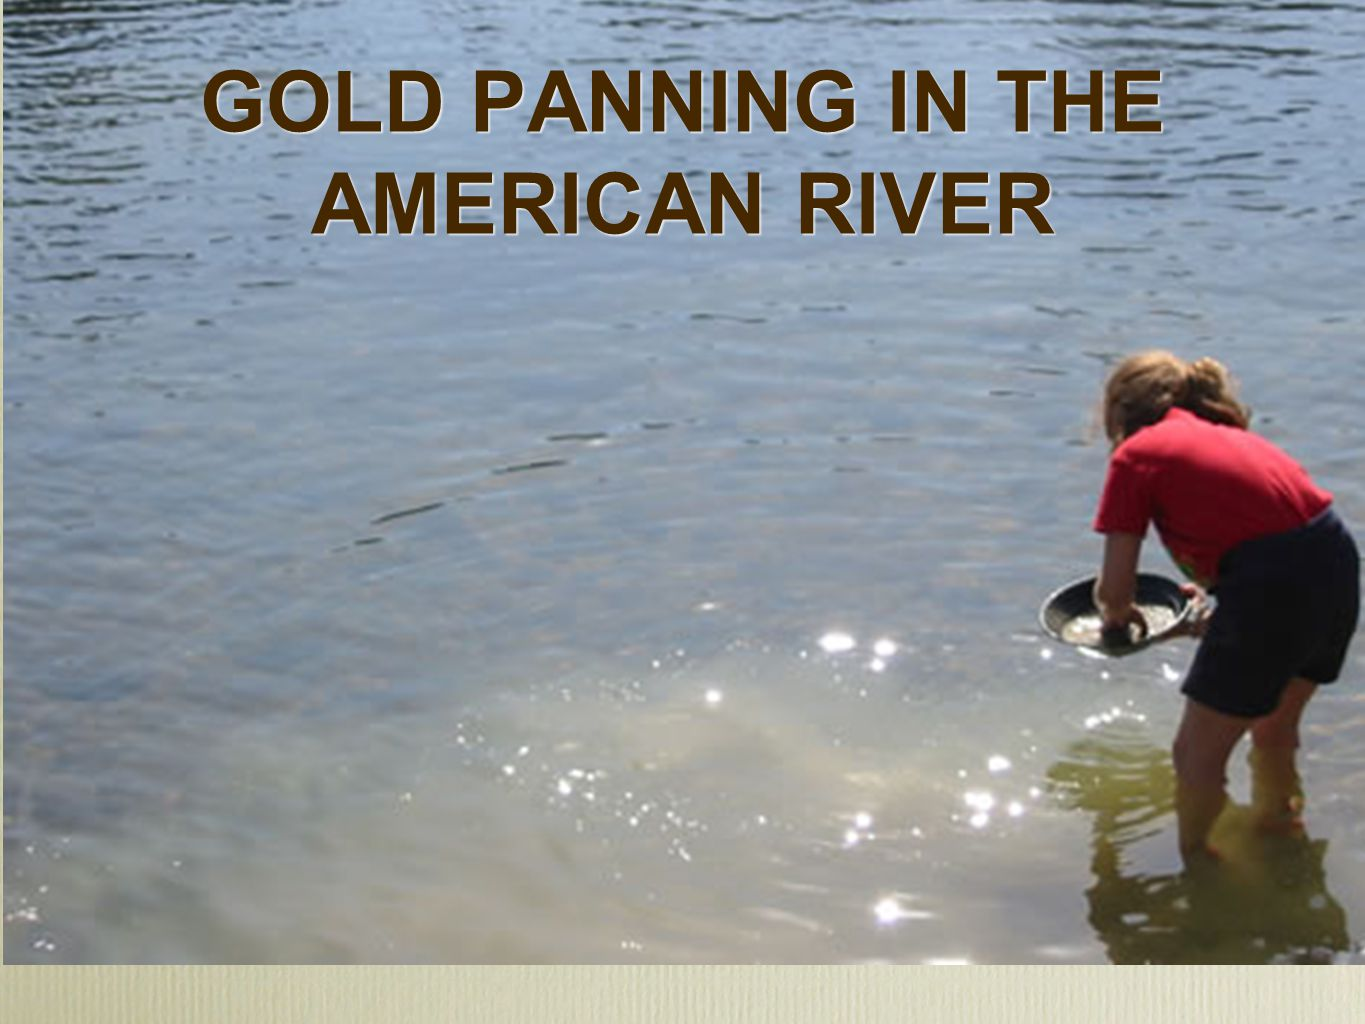 GOLD PANNING IN THE AMERICAN RIVER